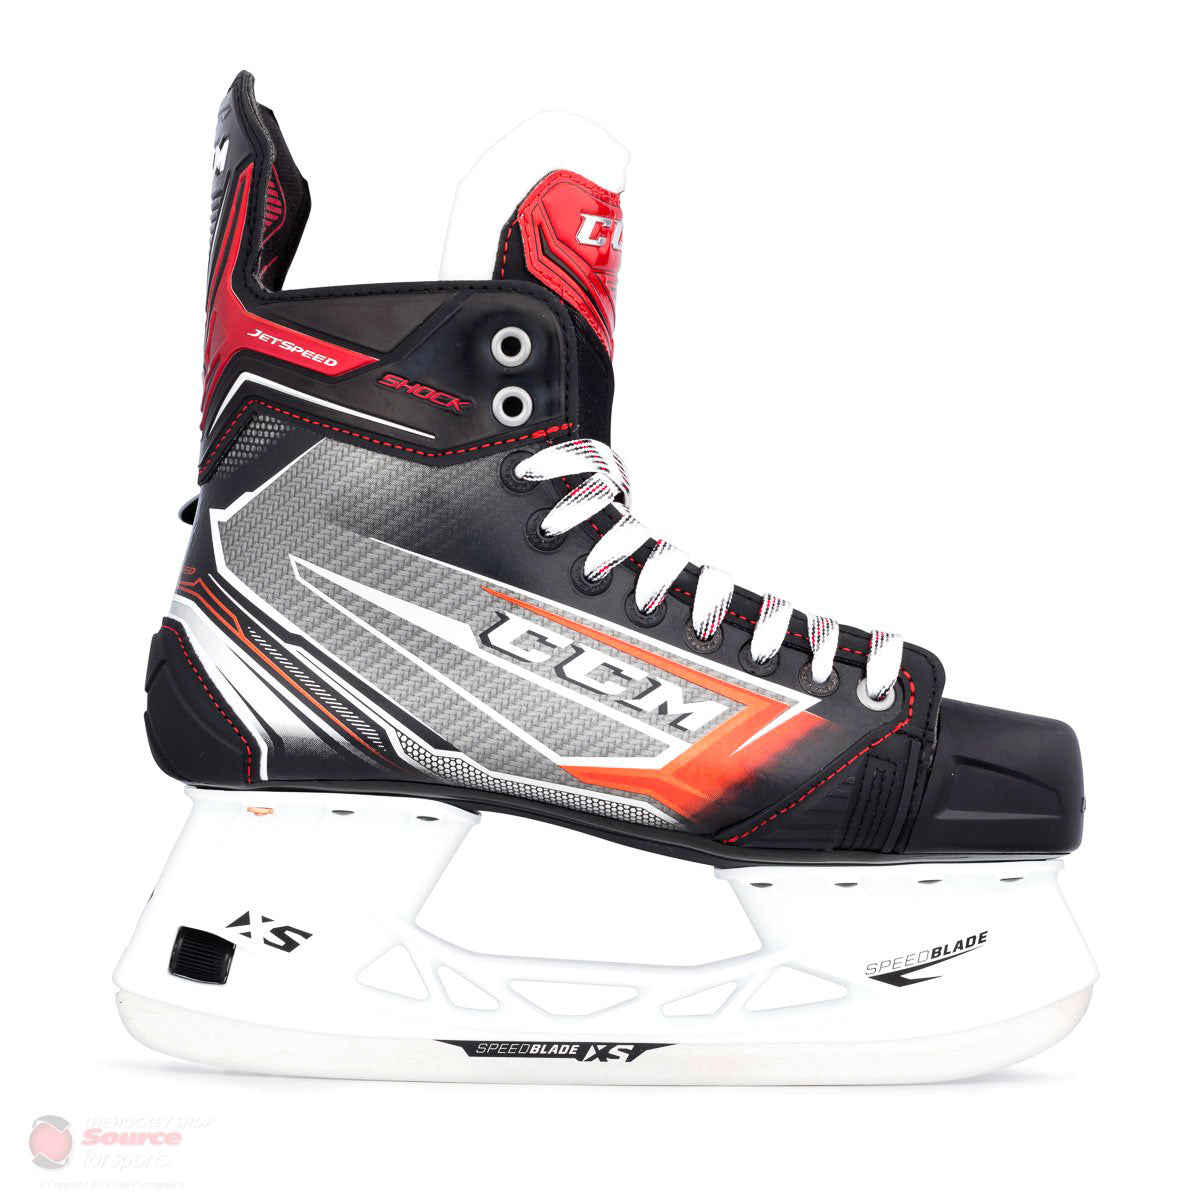 CCM Jetspeed Shock Senior Hockey Skates